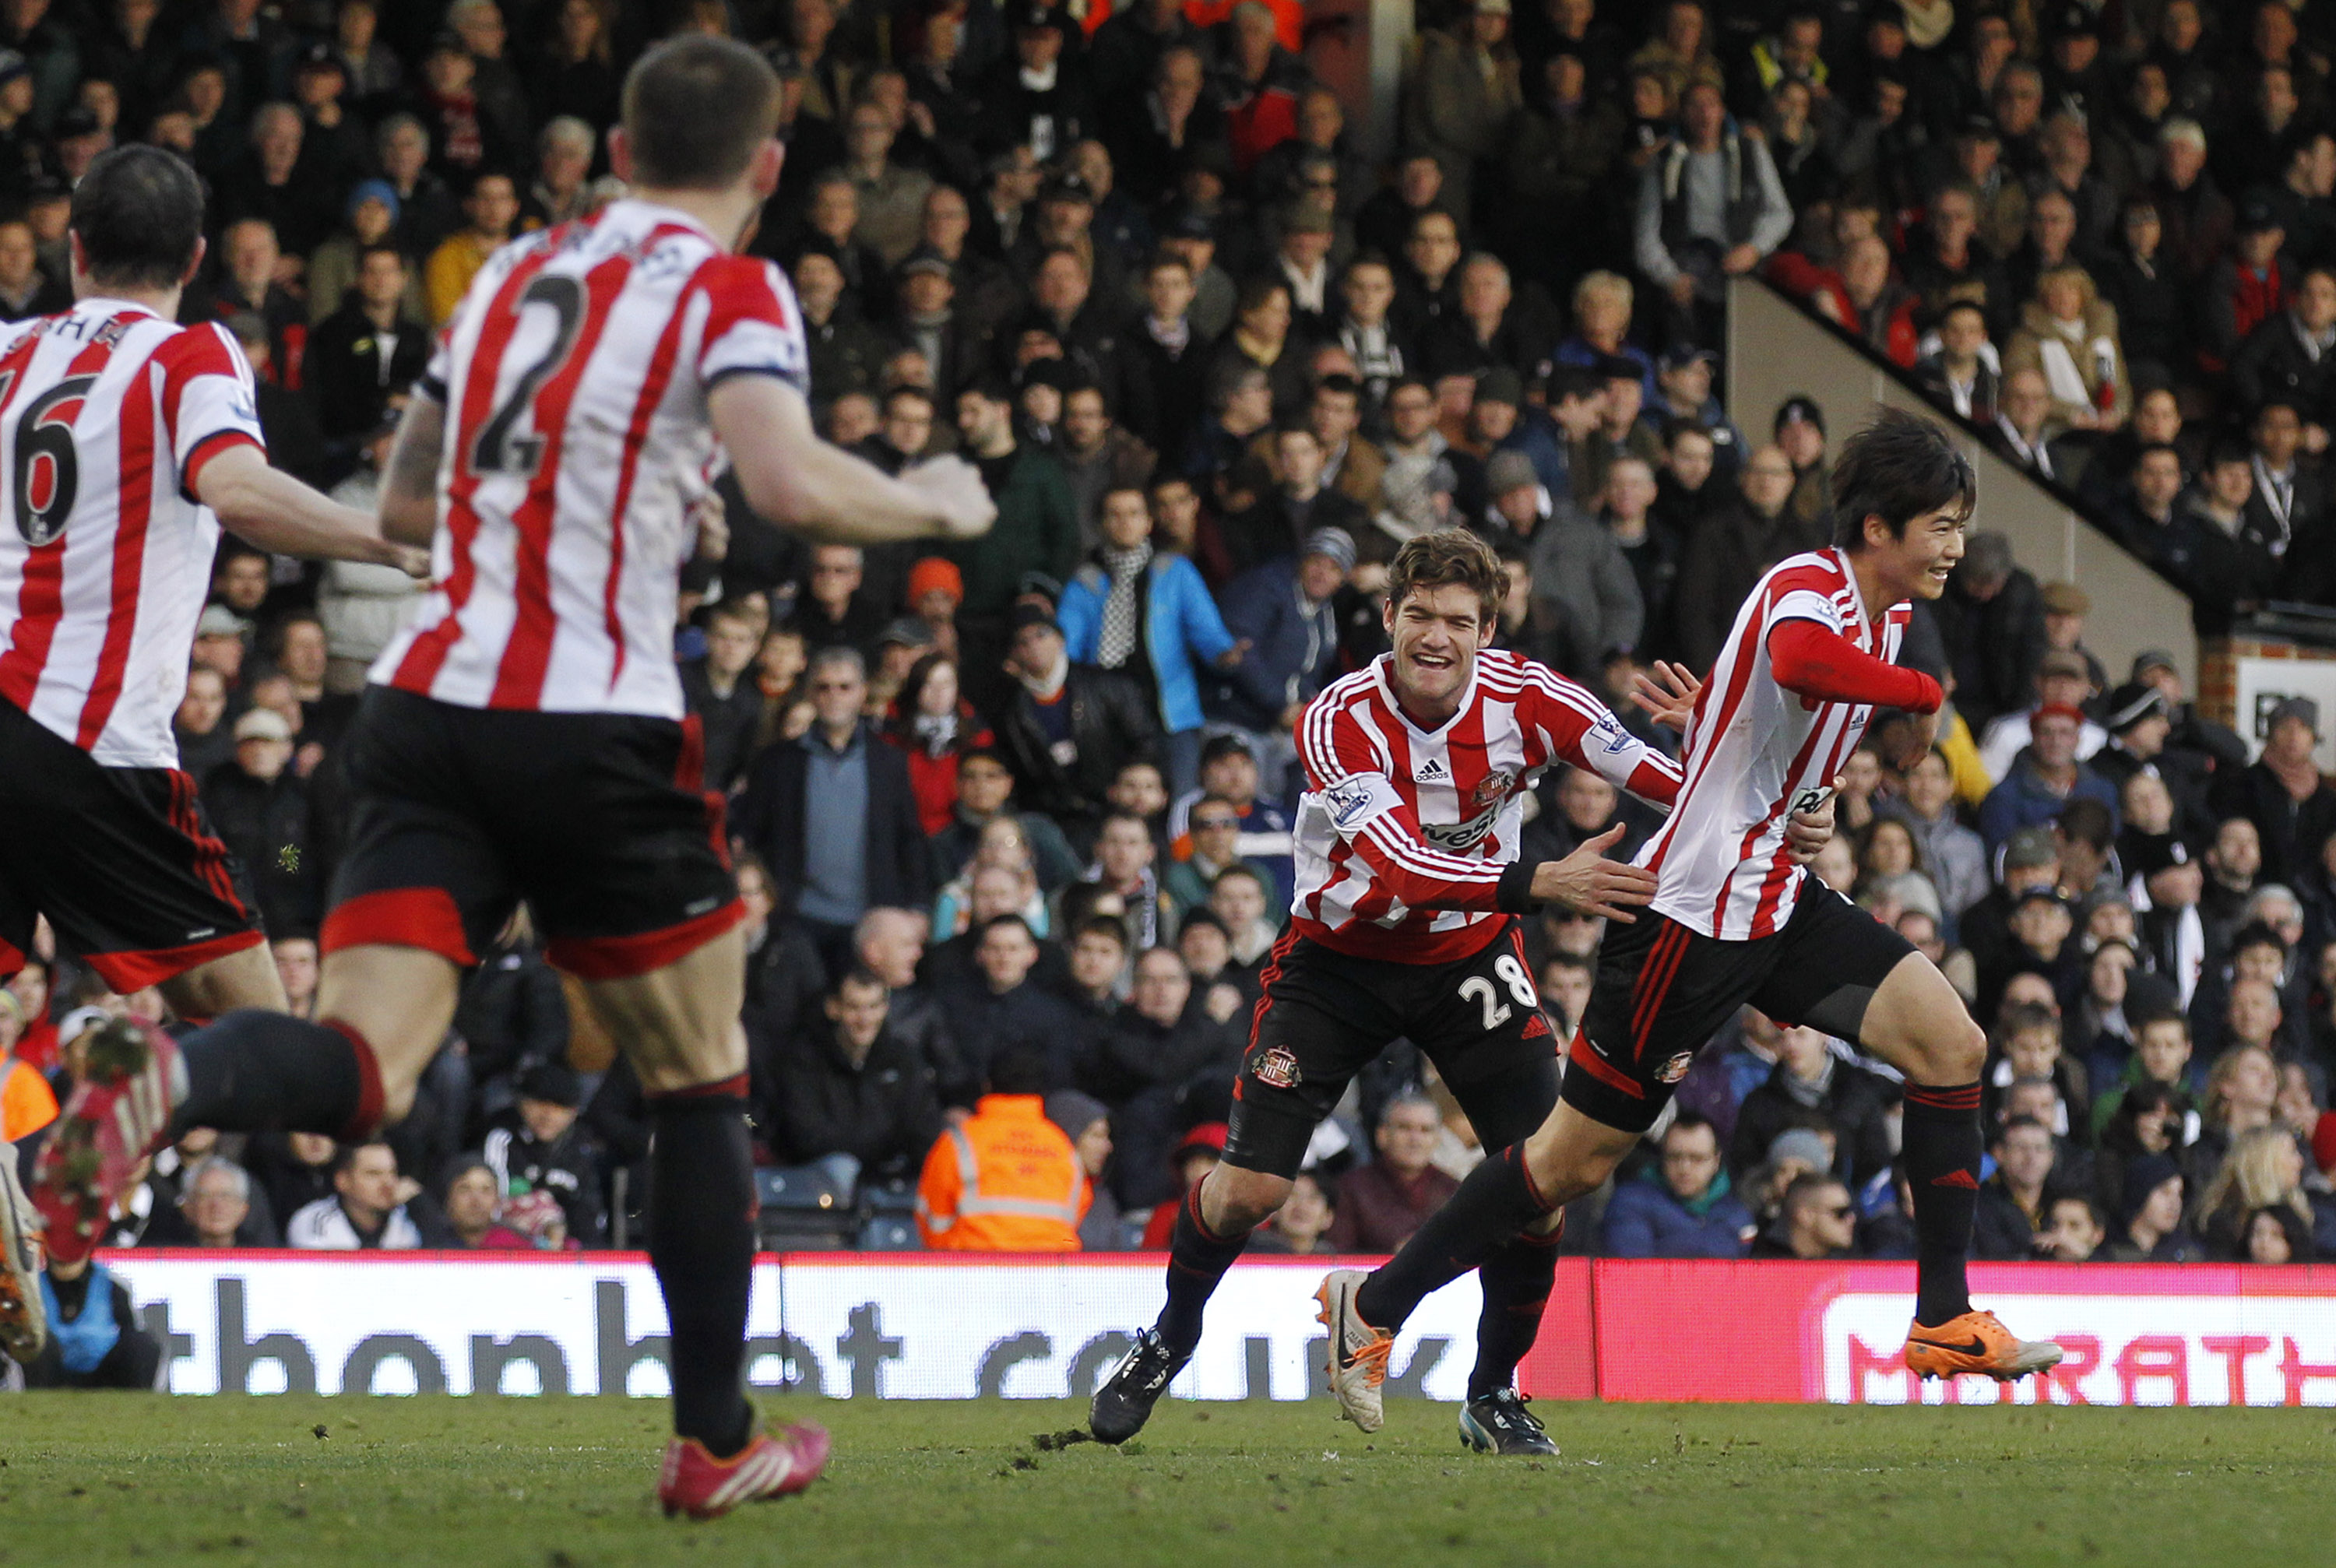 Sunderland's Ki Sung-Yueng, right, celebrates his goal against Fulham with teammates during their English Premier League soccer match at Craven Cottage, London, Saturday, Jan. 11, 2014. (AP Photo/Sang Tan)